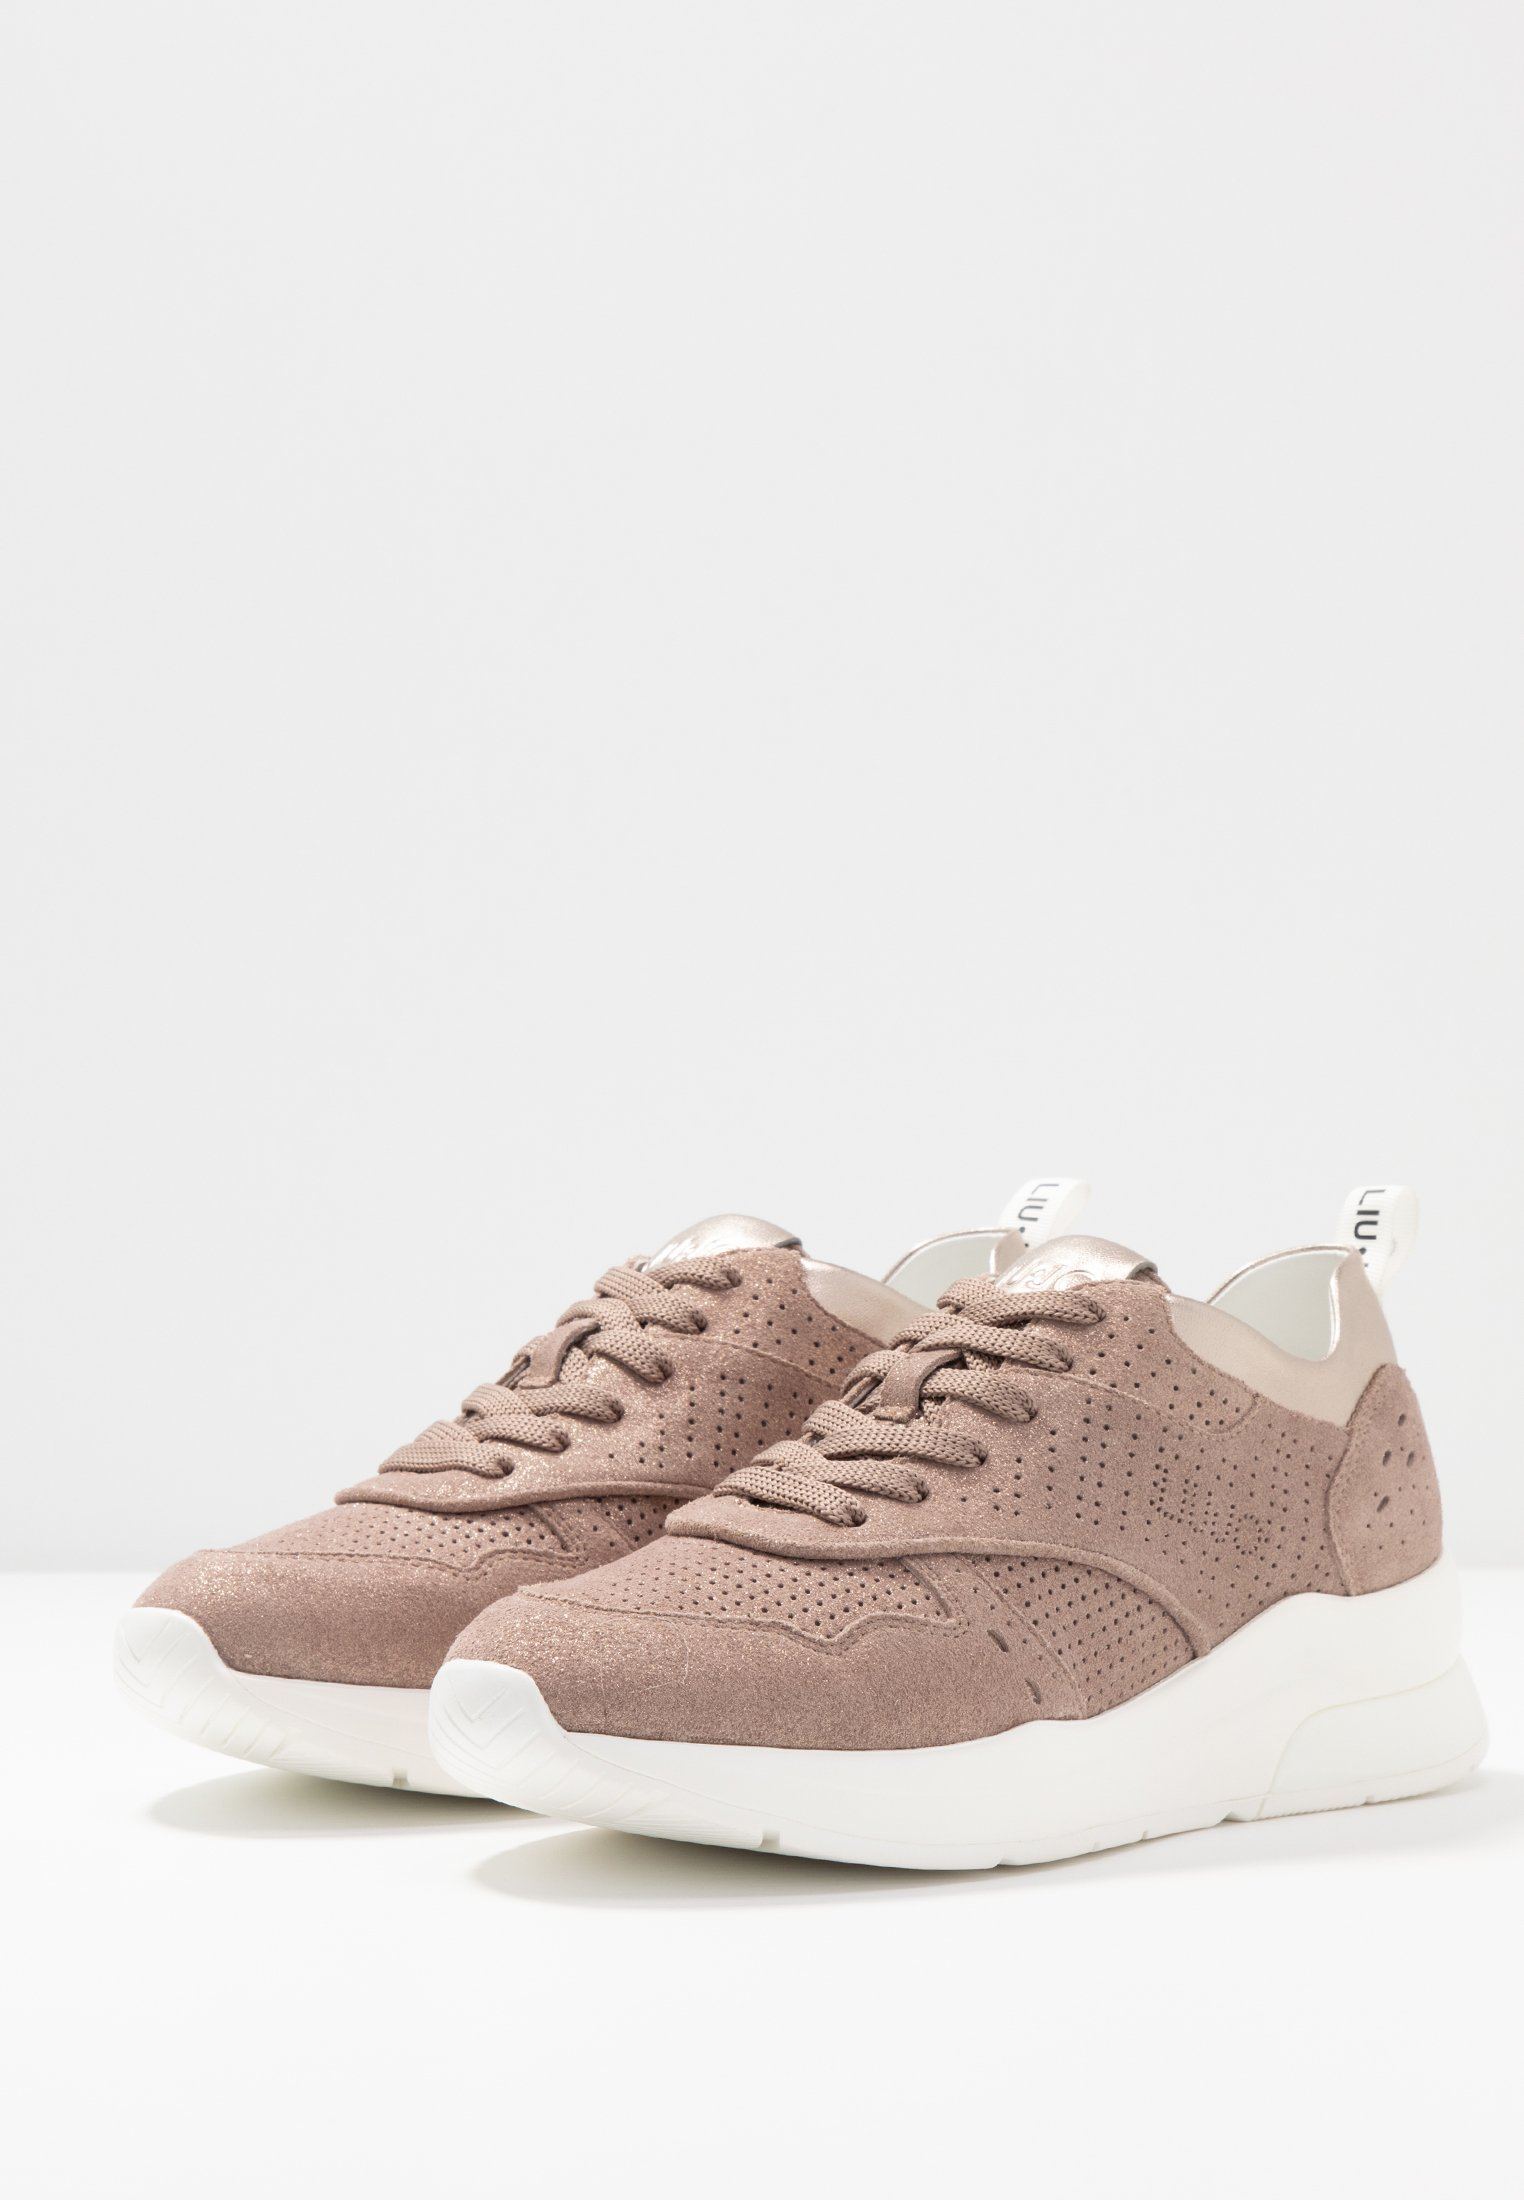 Liu Jo Jeans KARLIE - Sneaker low - sand - Black Friday